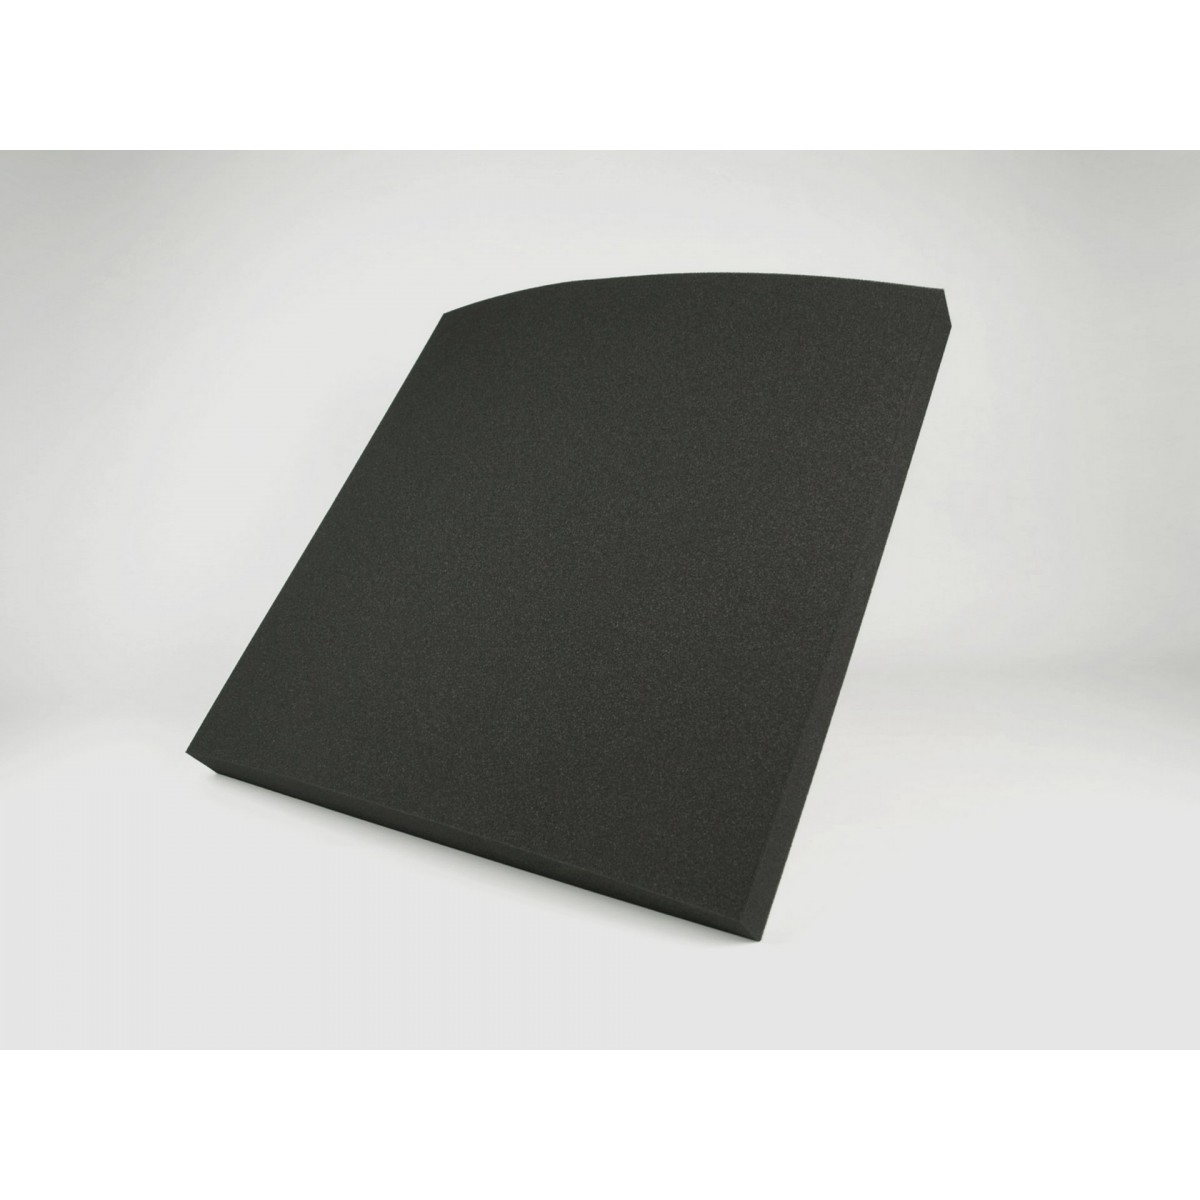 Eliacoustic curve pure dark grey